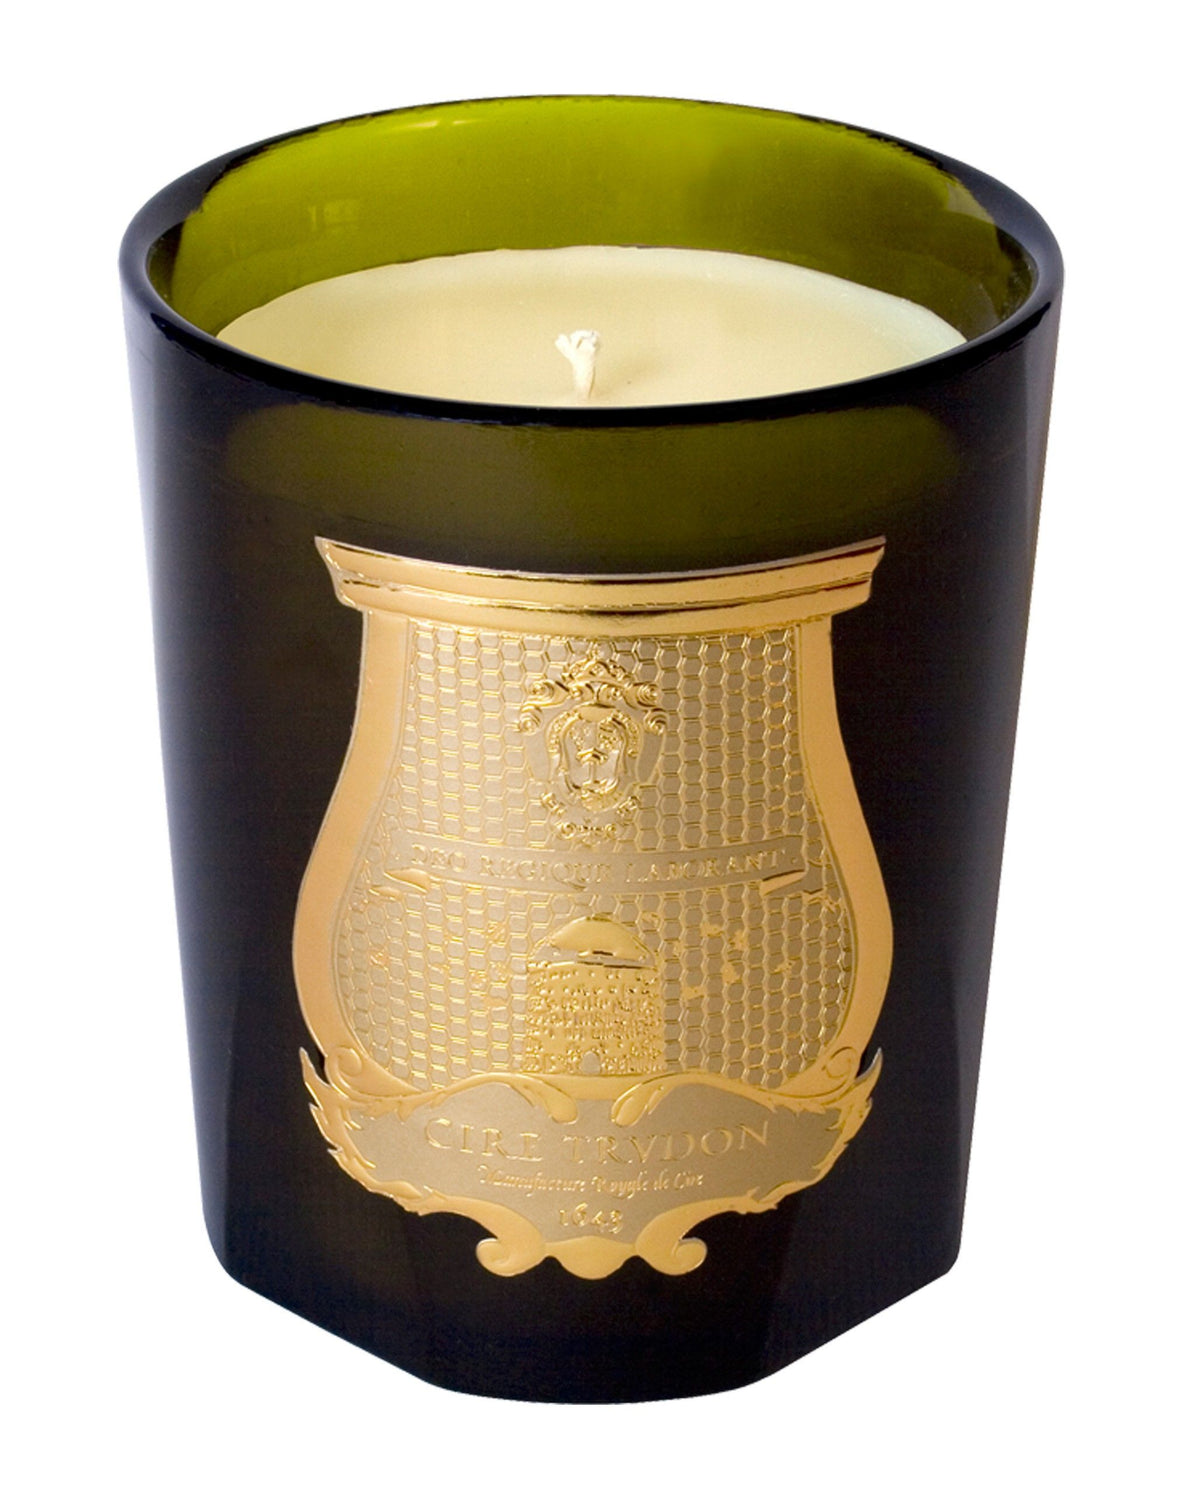 Balmoral Travel Candle